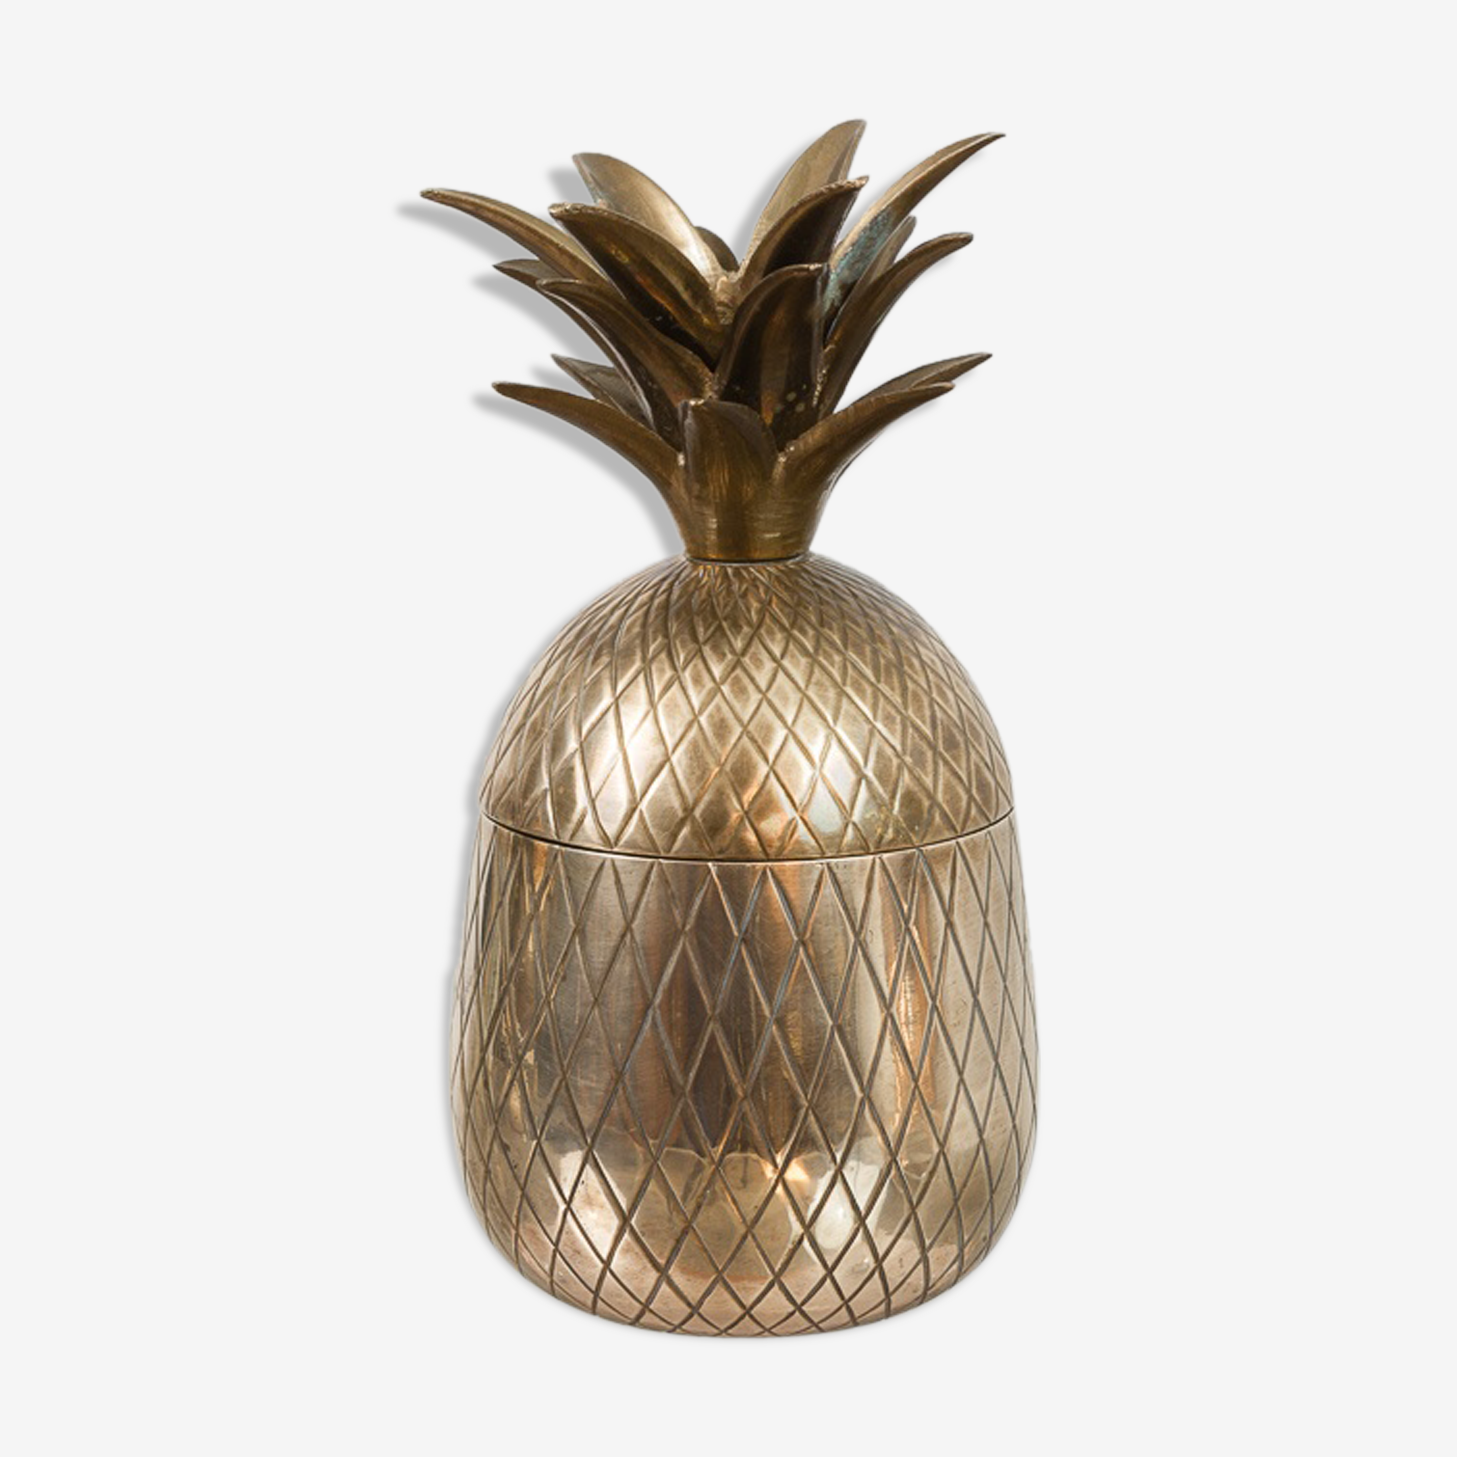 Medium Sized Vintage Hollywood Brass Pineapple